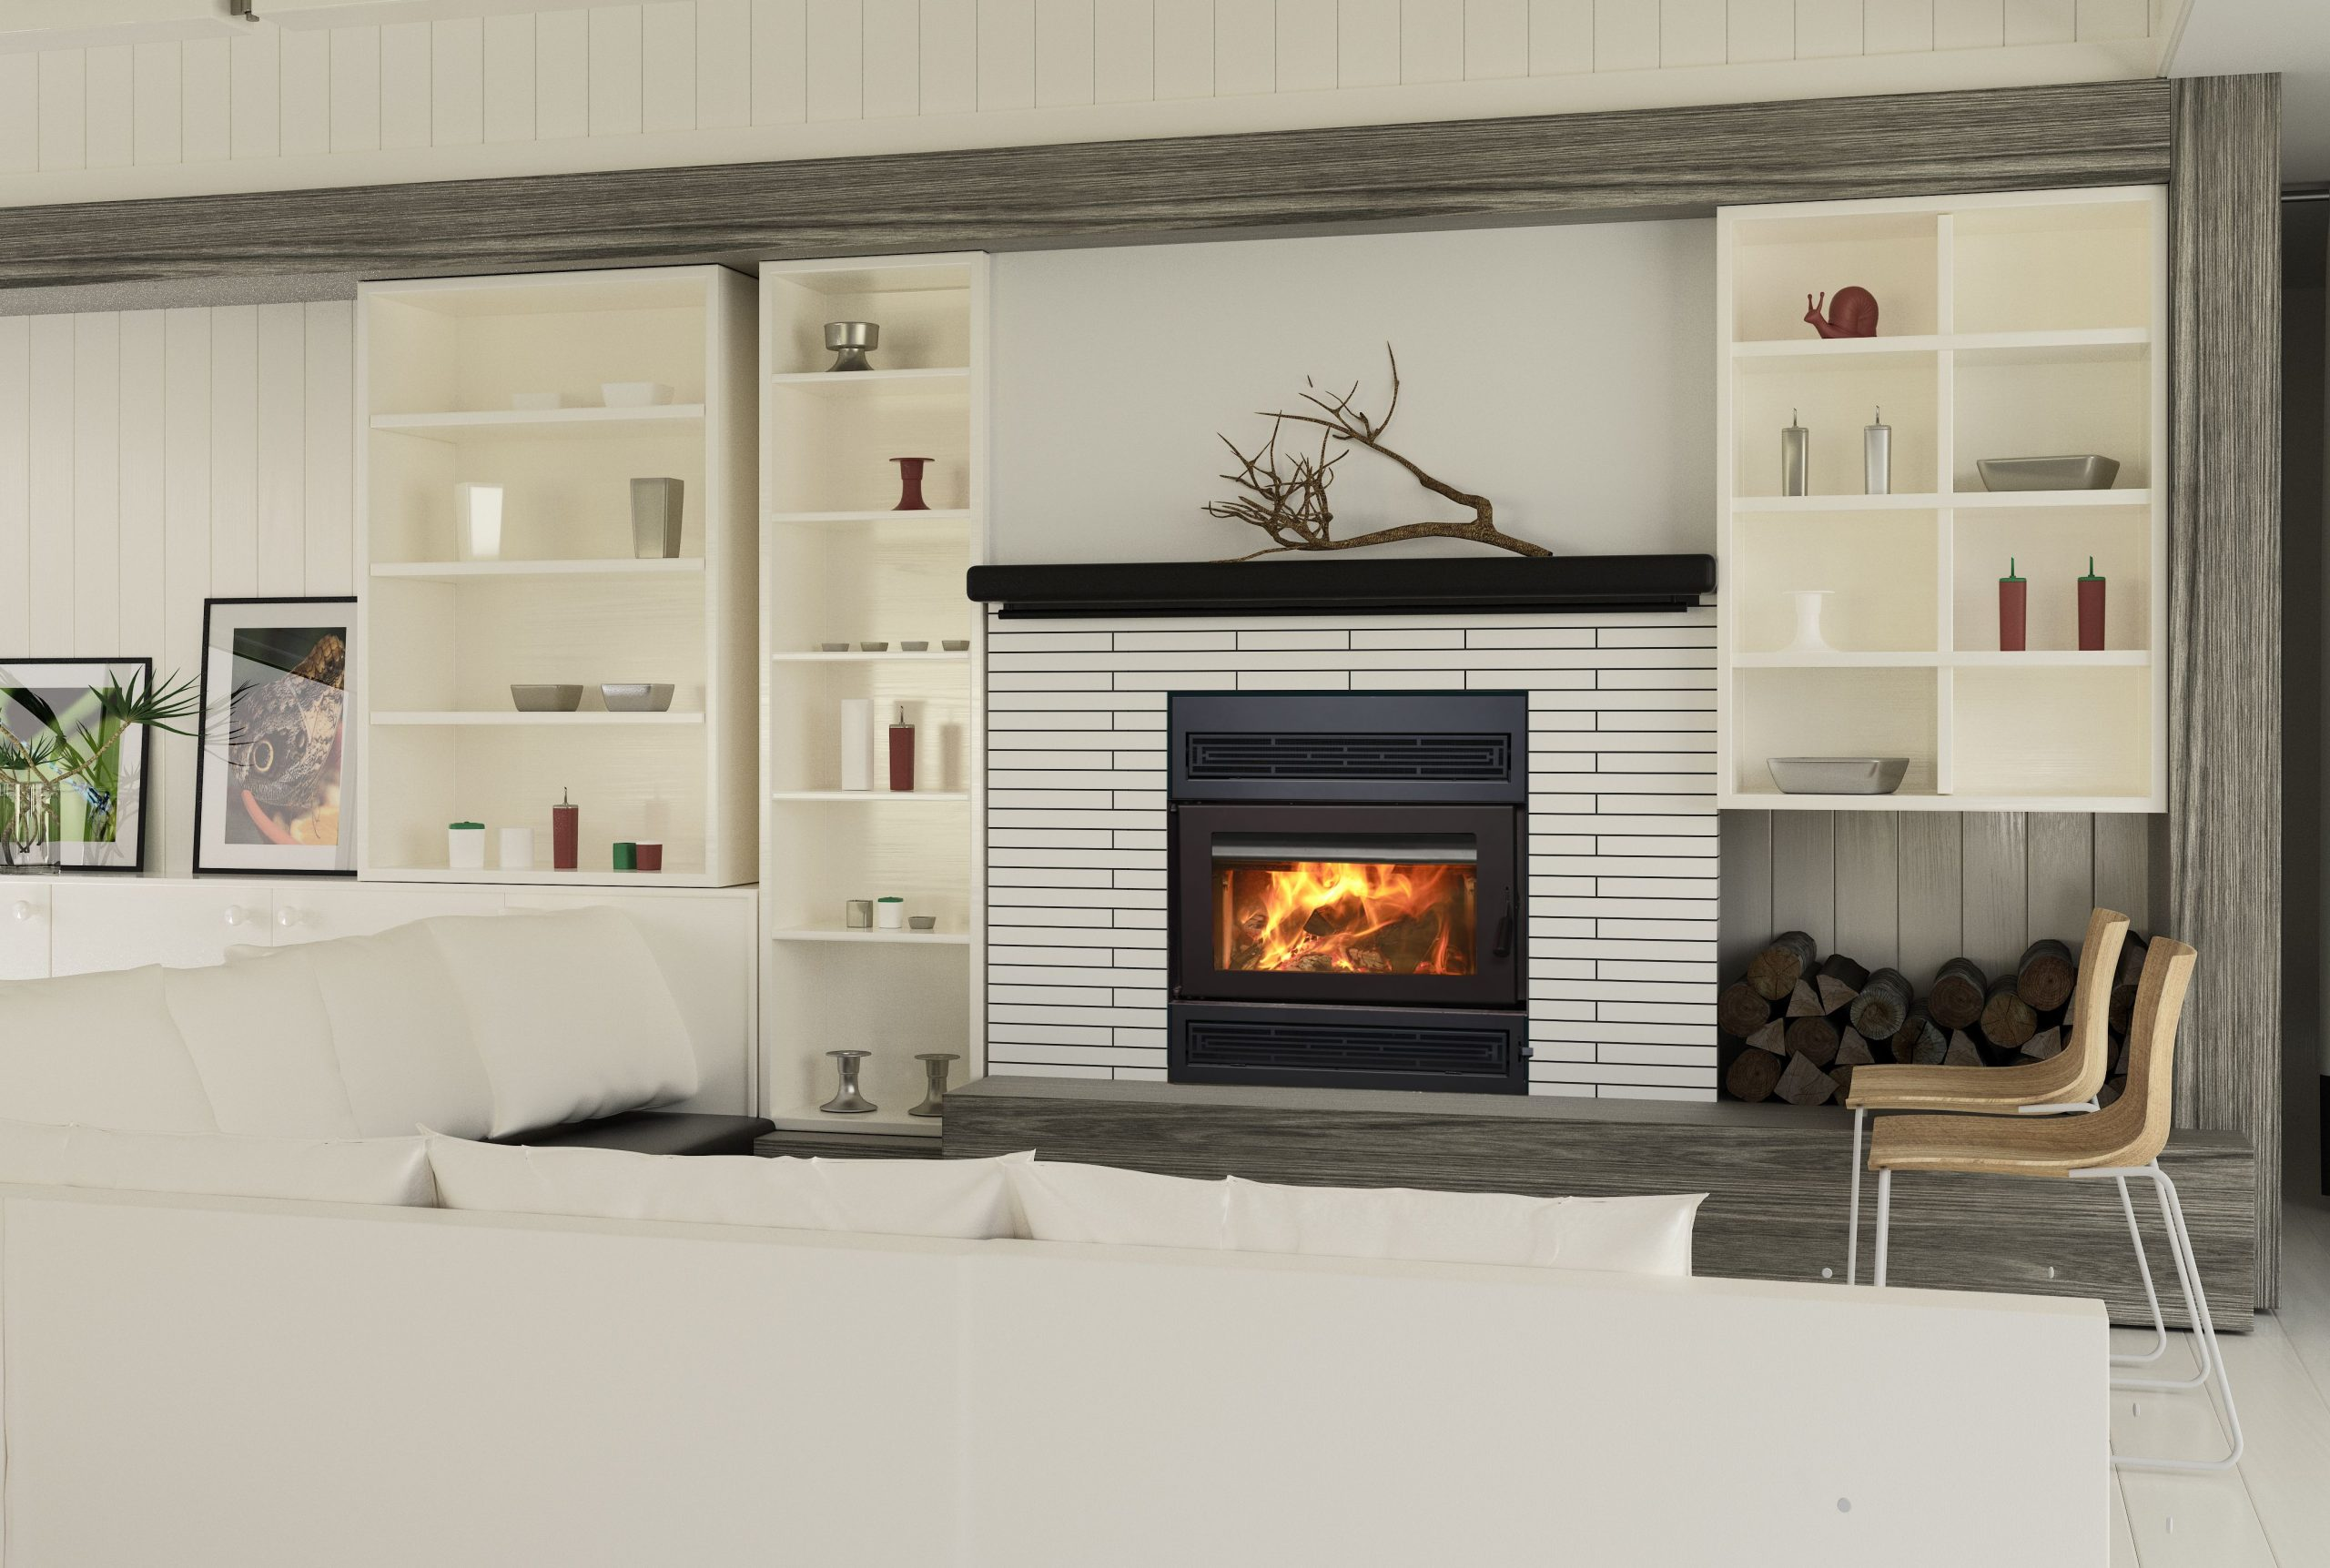 How to Increase the Efficiency of Your Fireplace